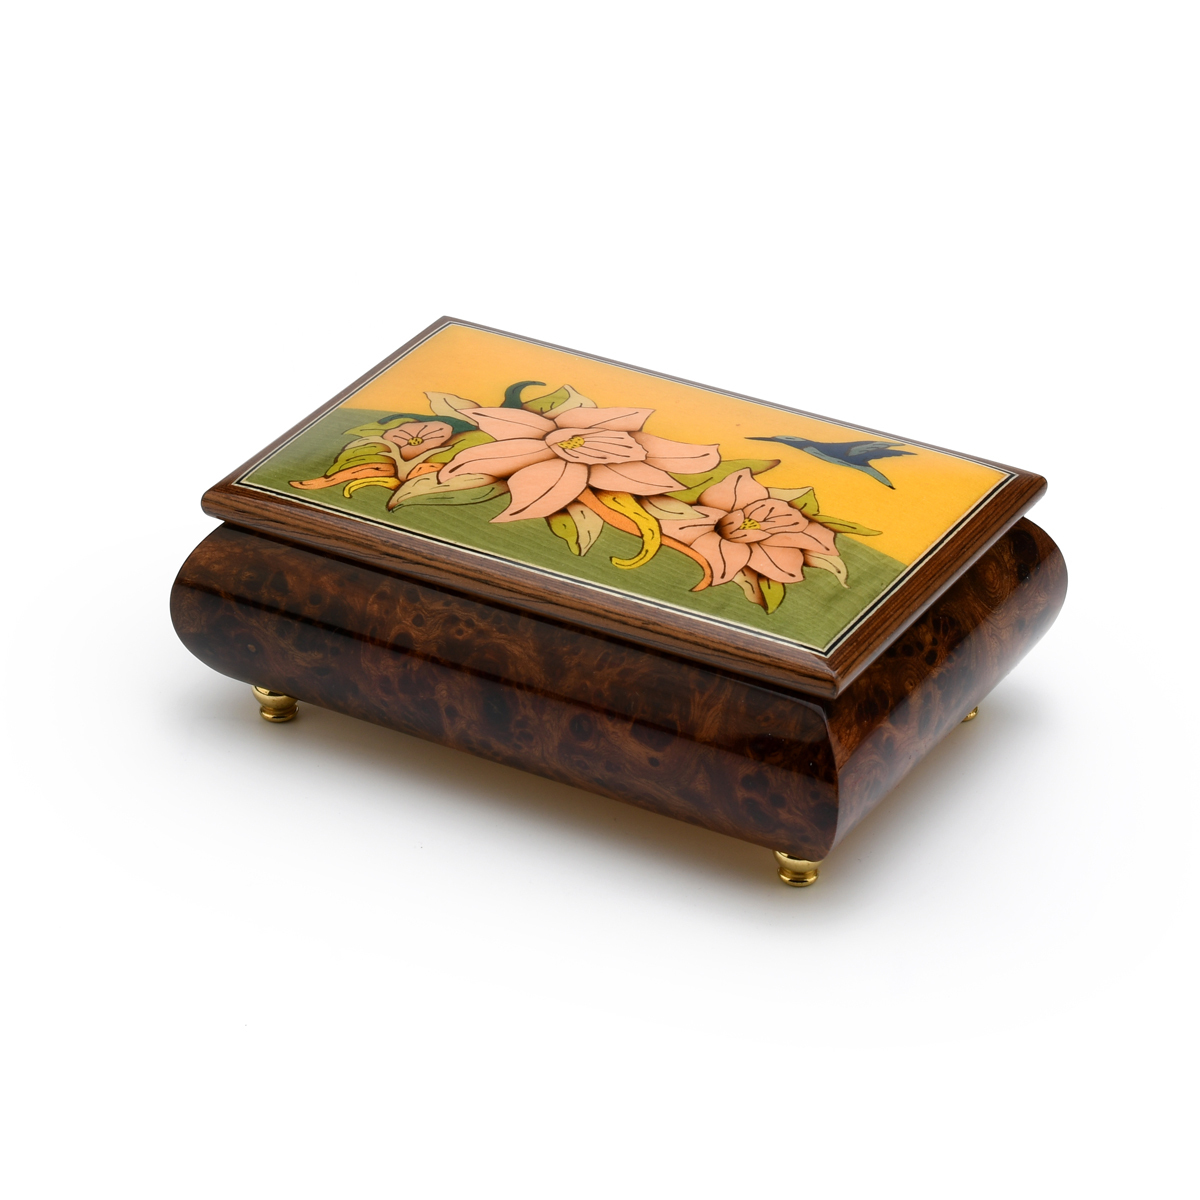 Handcrafted 30 Note Tropical Theme Inlay Music Box with Hummingbird and Floral Design